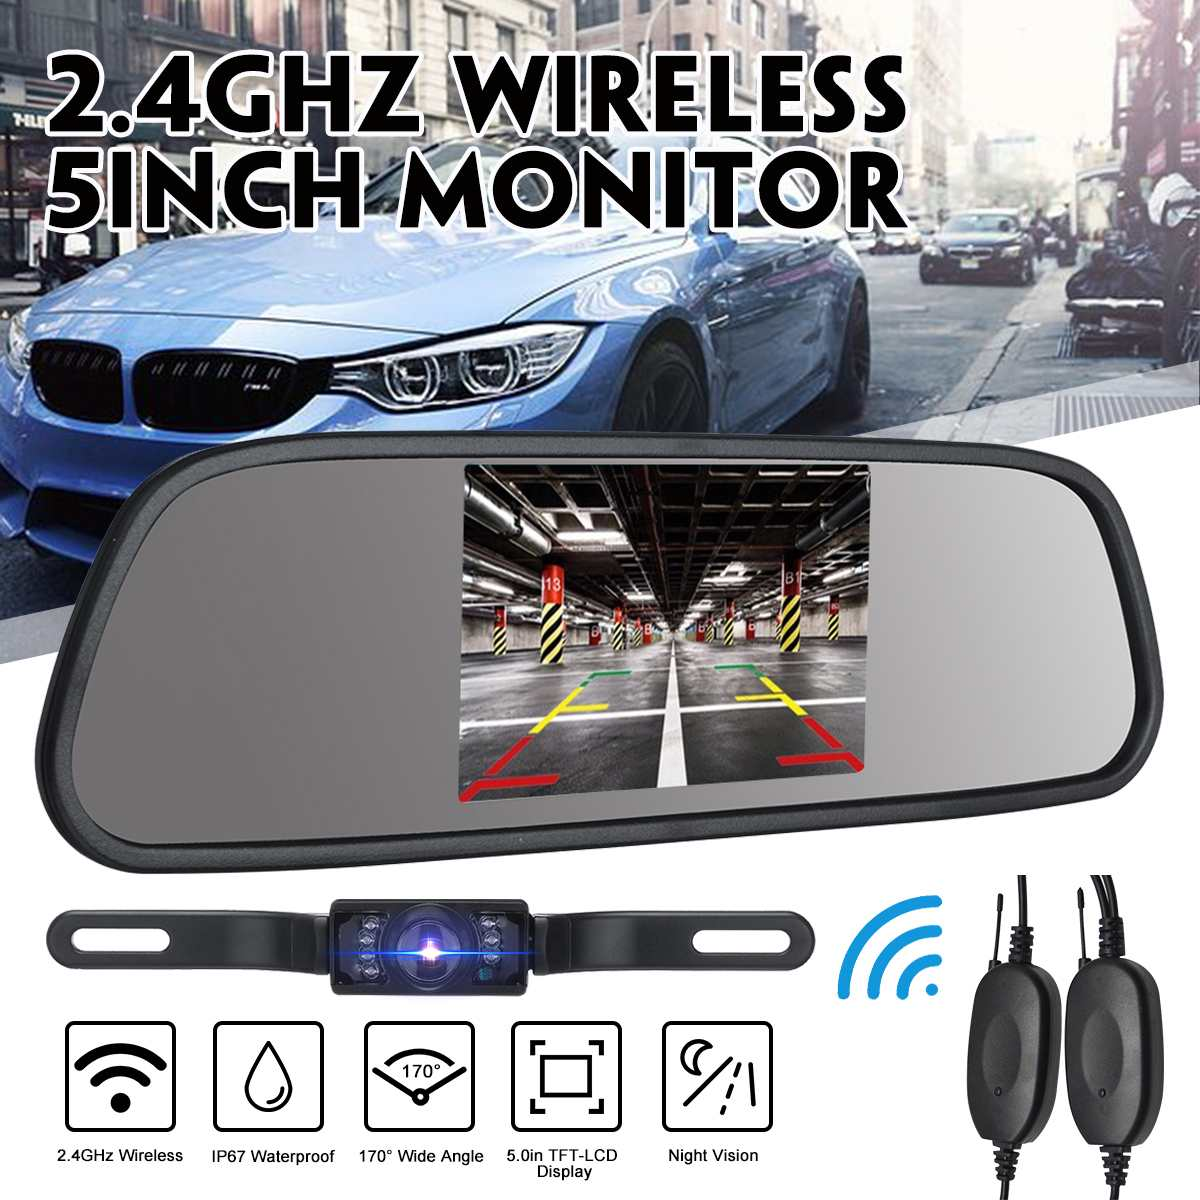 2.4Ghz Wireless Car Rear View Backup Camera 5 Inch LCD Monitor Mirror IP67 Waterproof Car Reverse Camera Parking Reverse Kit